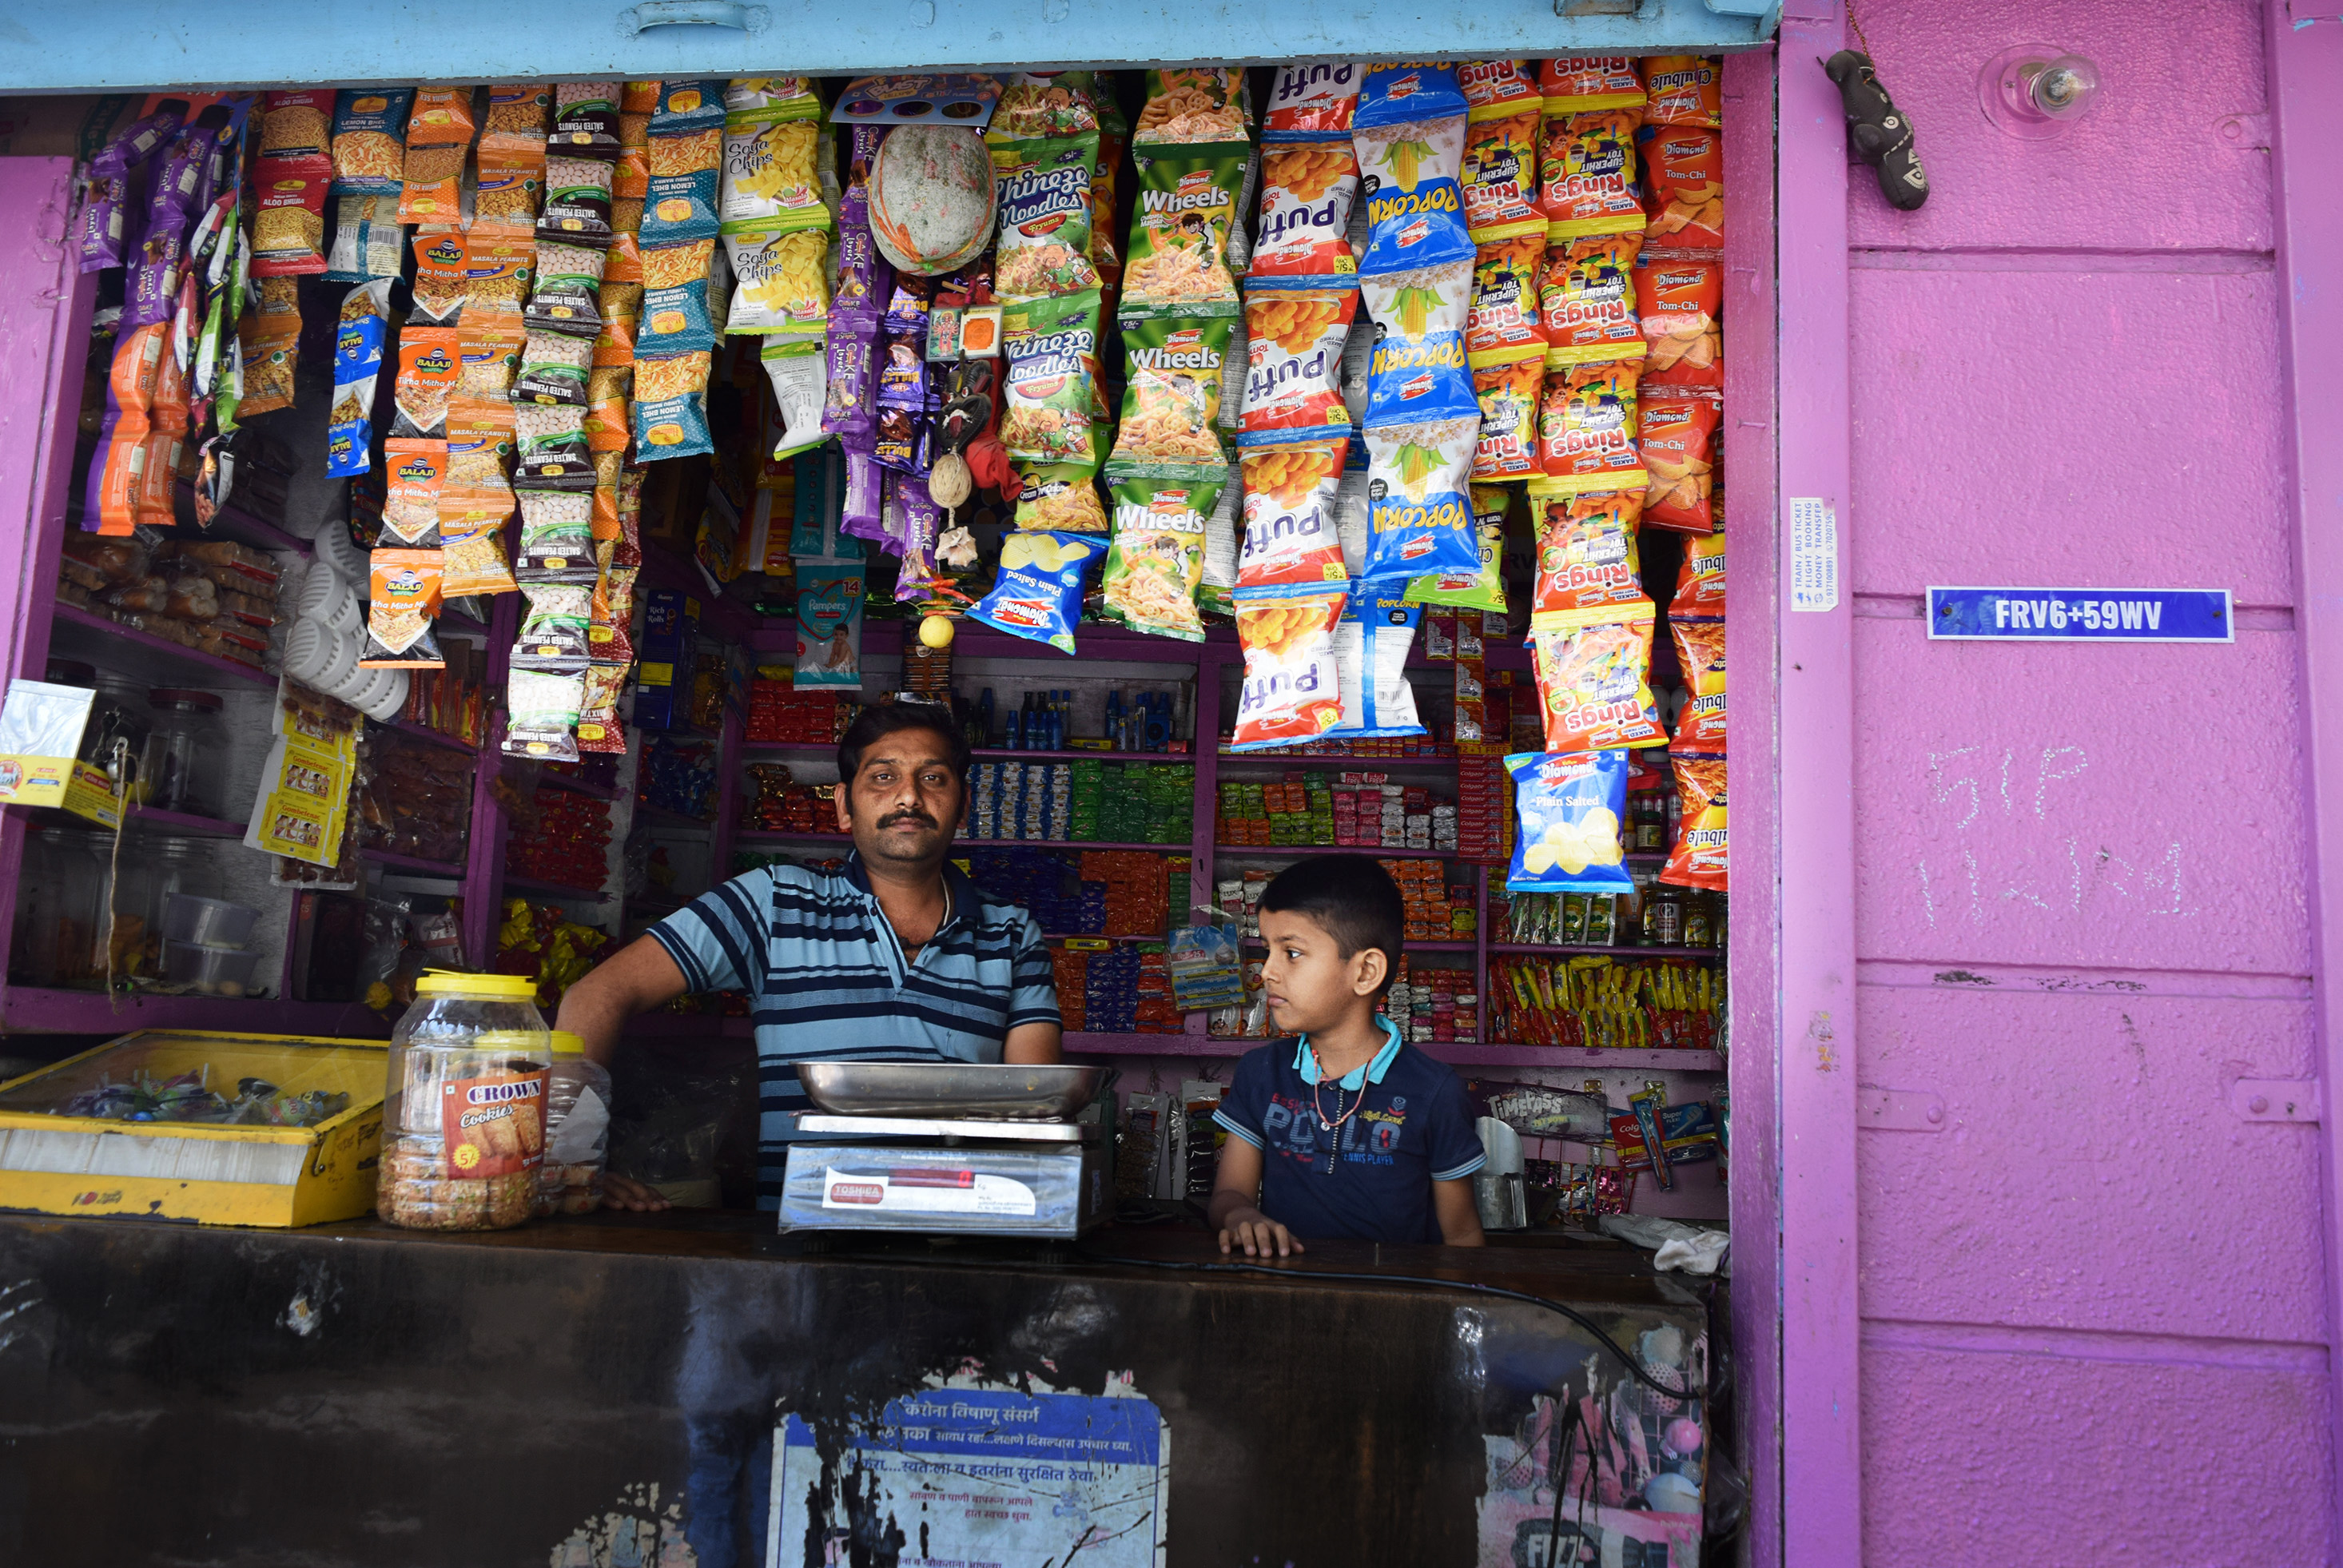 Grocer's shop with Google Plus address code displayed